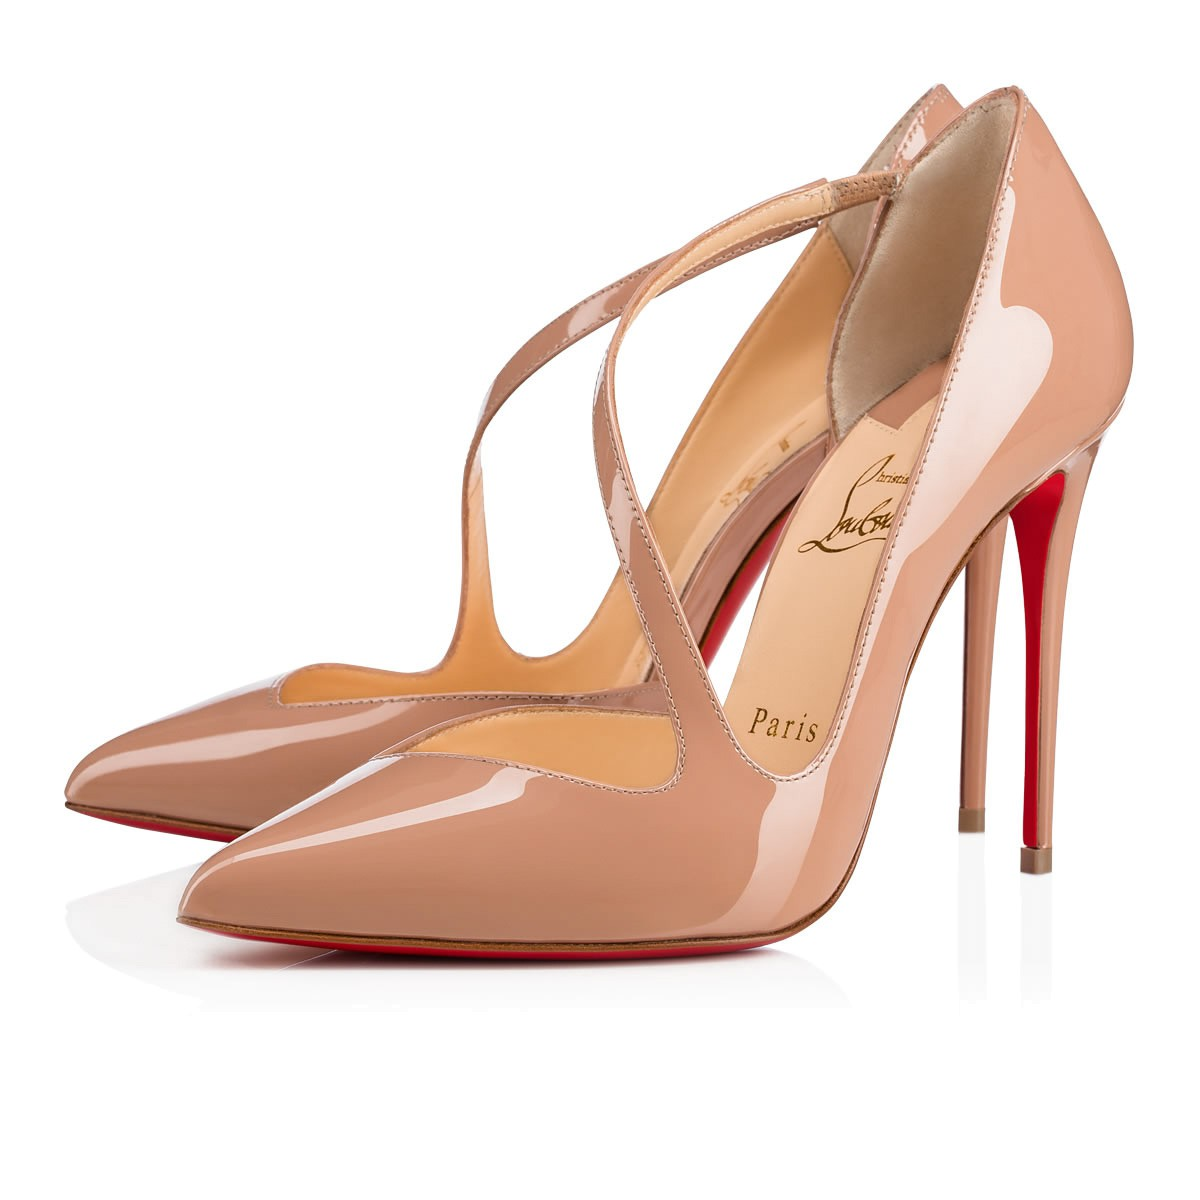 Crossfliketa 100 beige patent leather pumps Christian Louboutin vvWkz